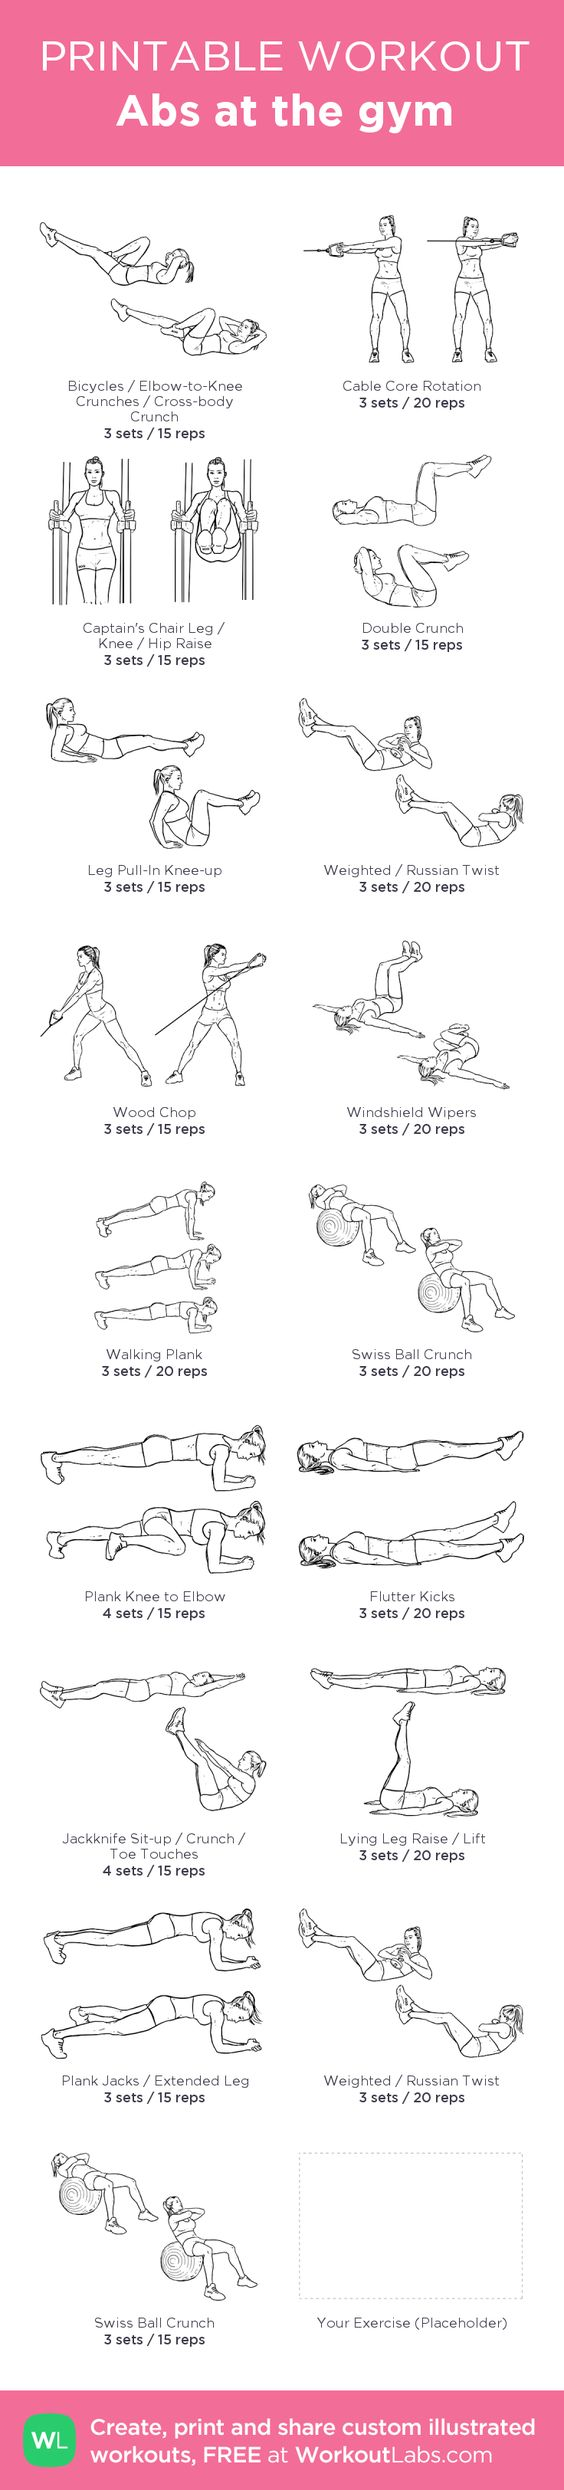 Revered image pertaining to printable ab workout